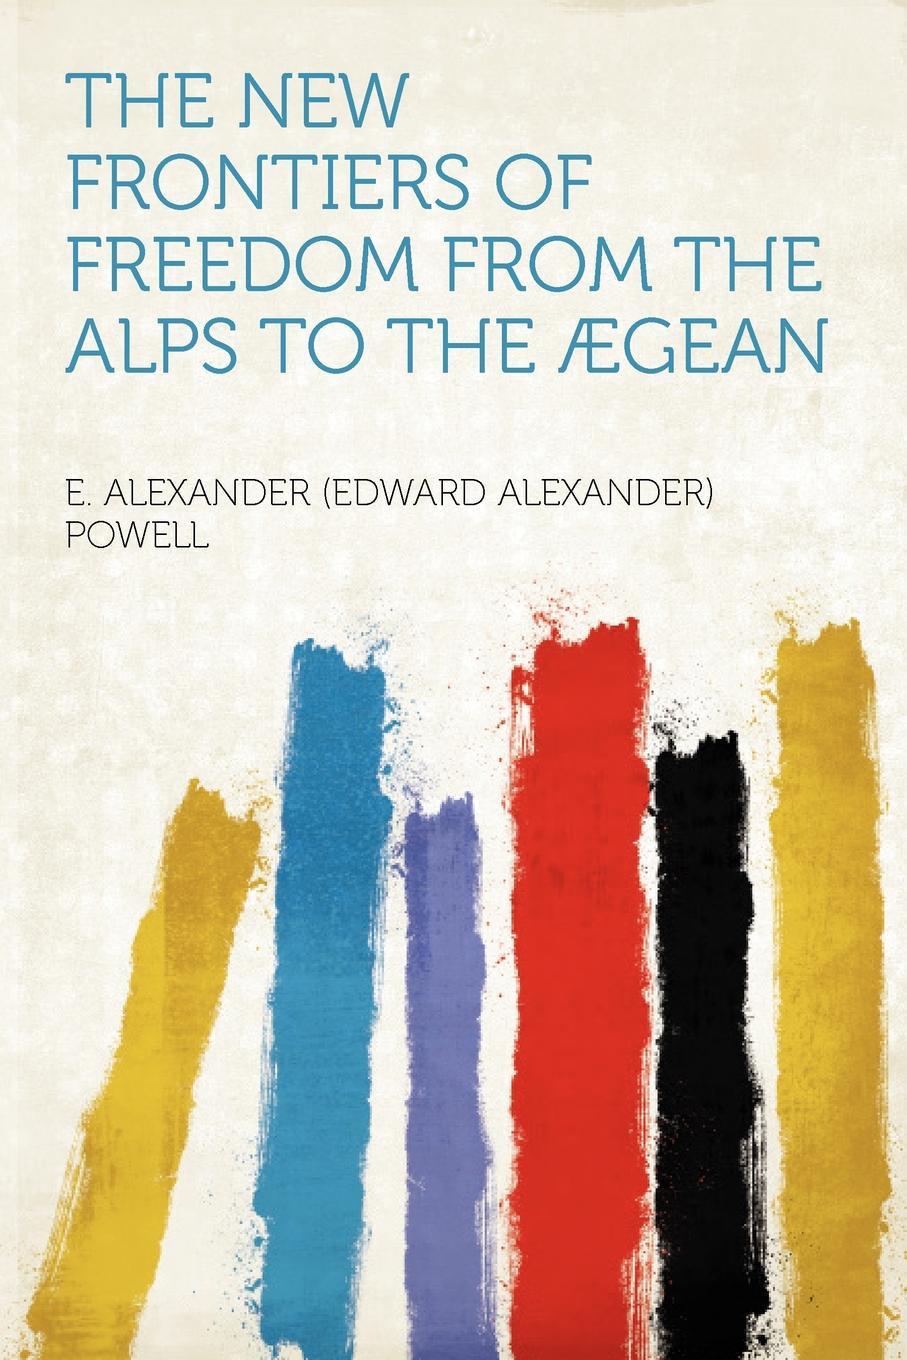 The New Frontiers of Freedom From the Alps to the AEgean